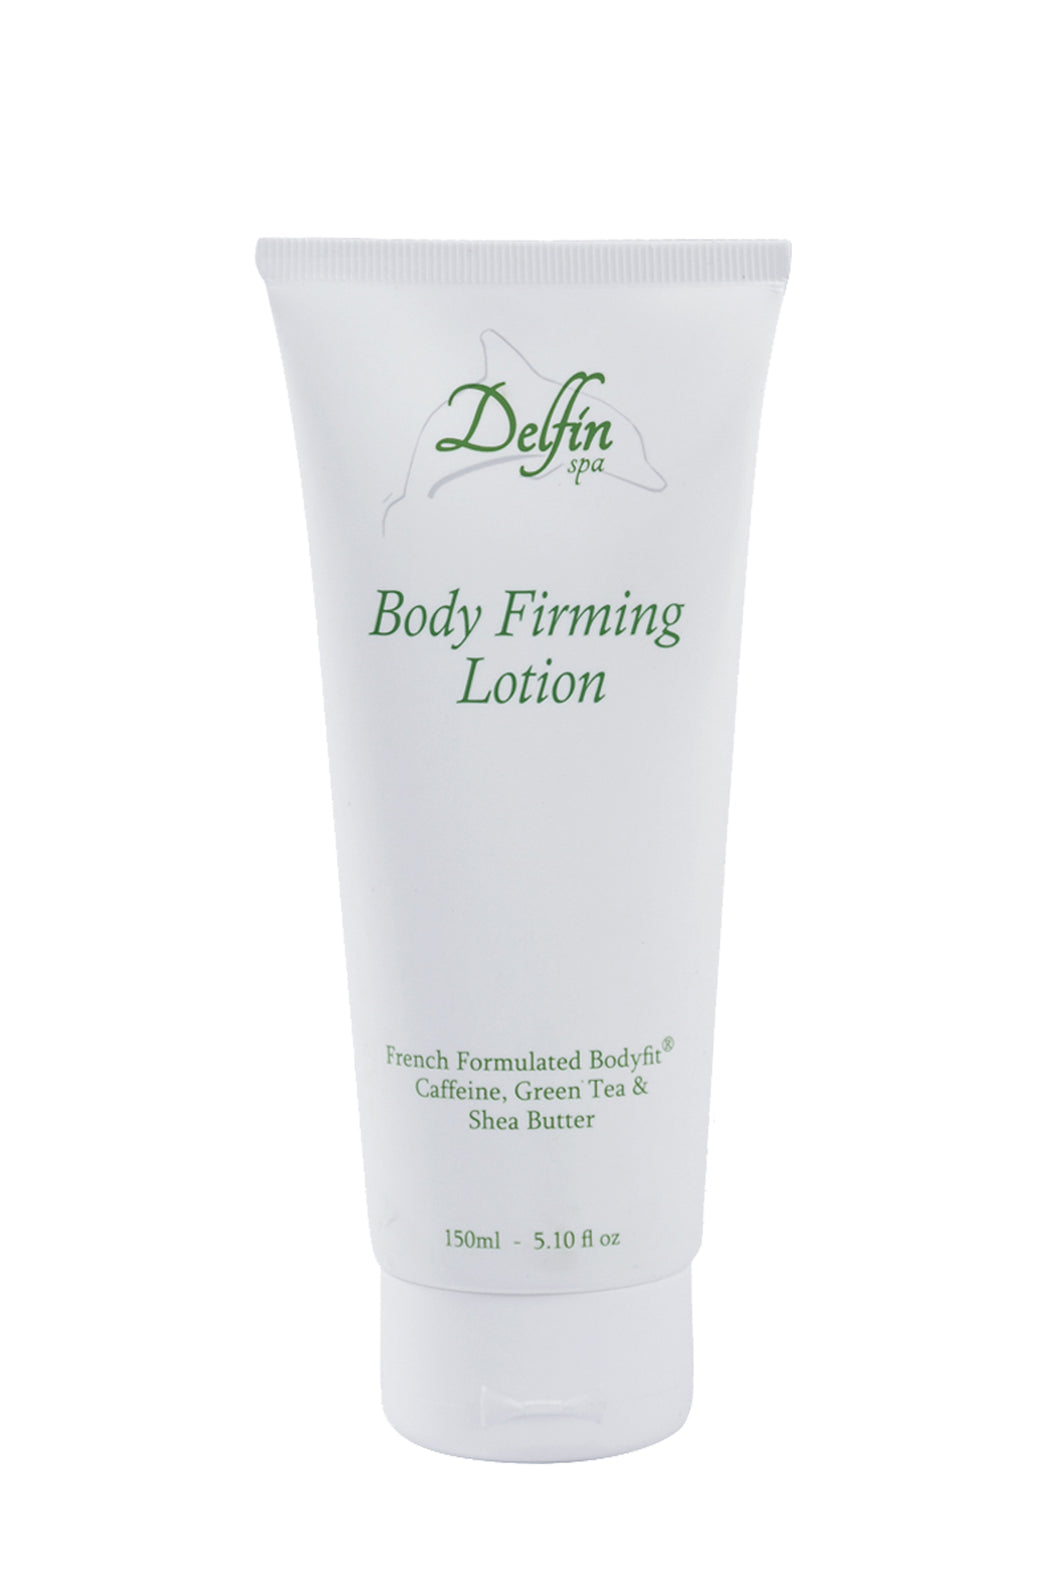 Body Firming Lotion, 5.10 oz